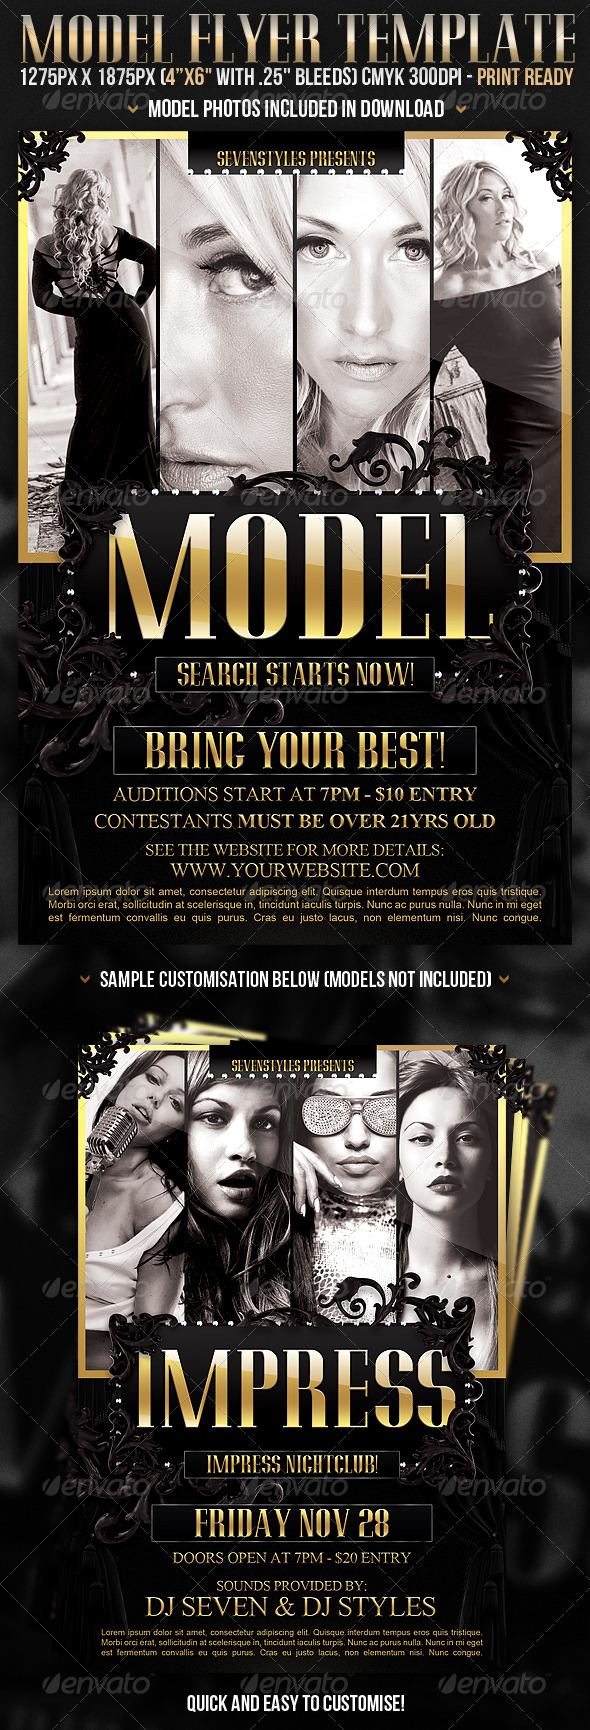 Model Flyer Template - GraphicRiver Item for Sale